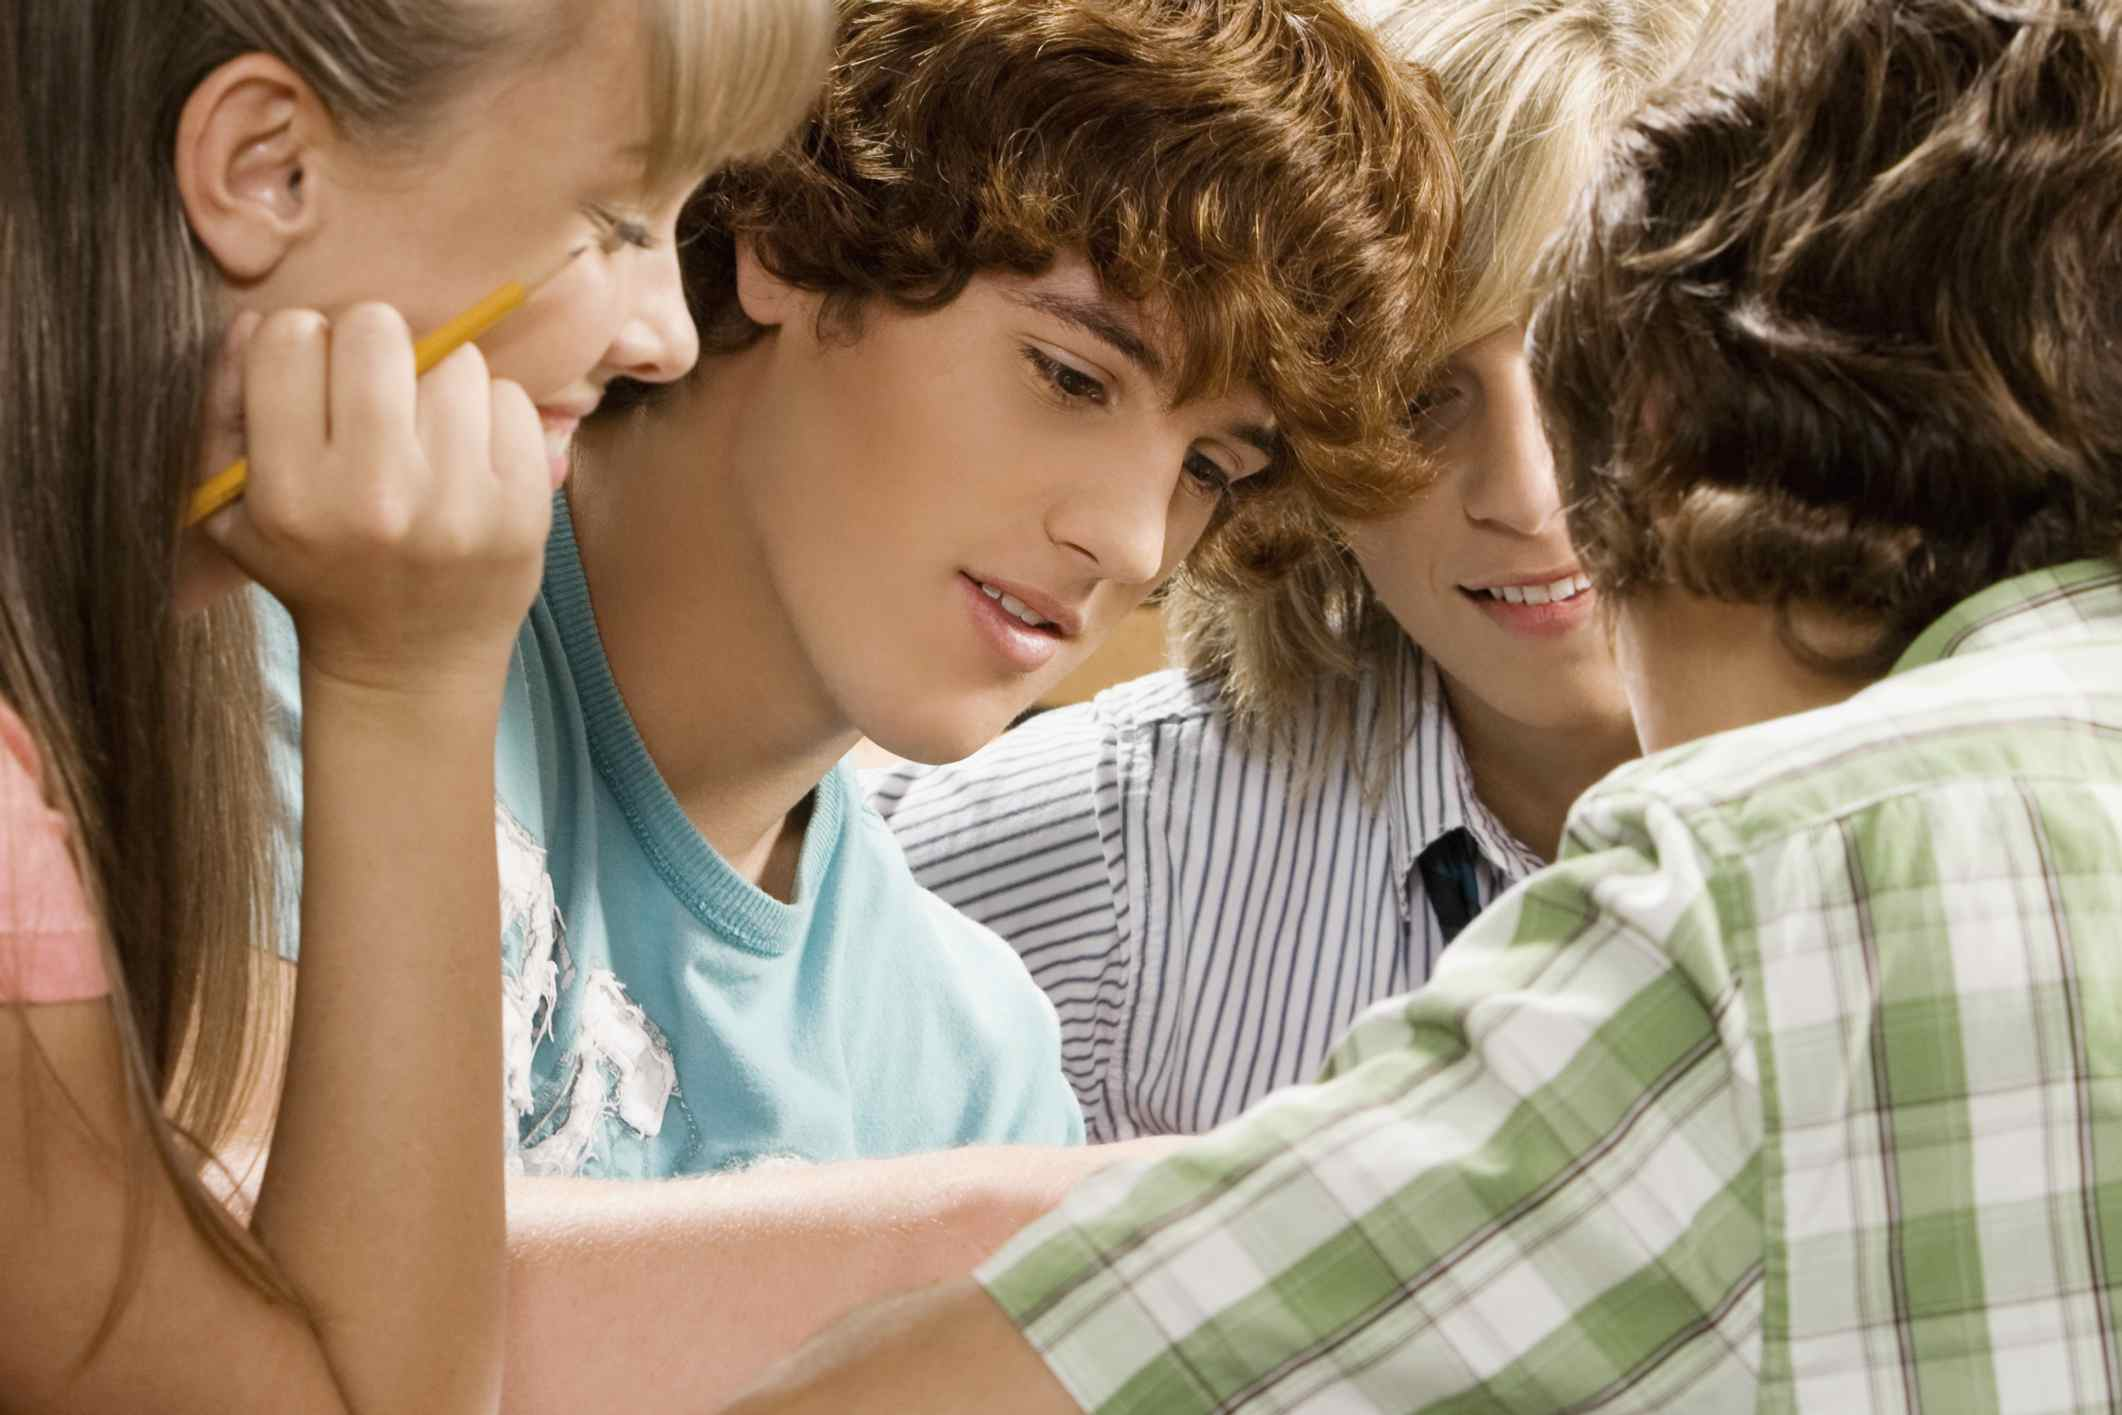 Students gathered closely together looking at classwork